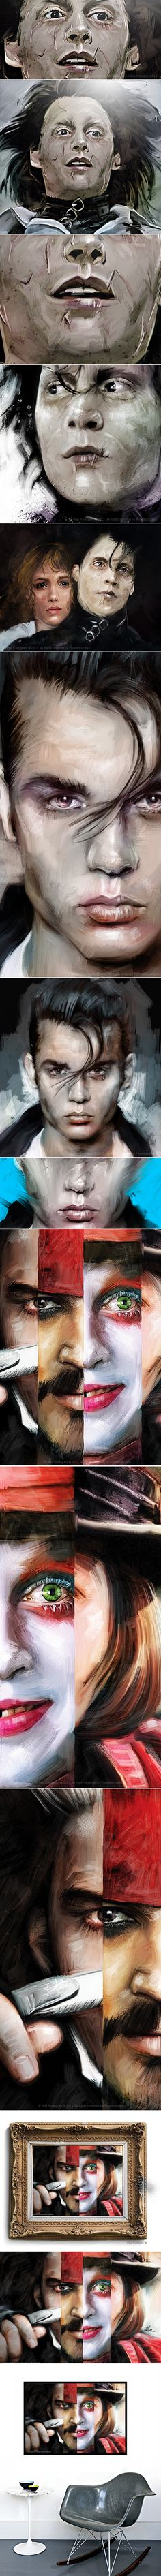 Many Faces of Johnny Depp by Vlad Rodriguez, via Behance